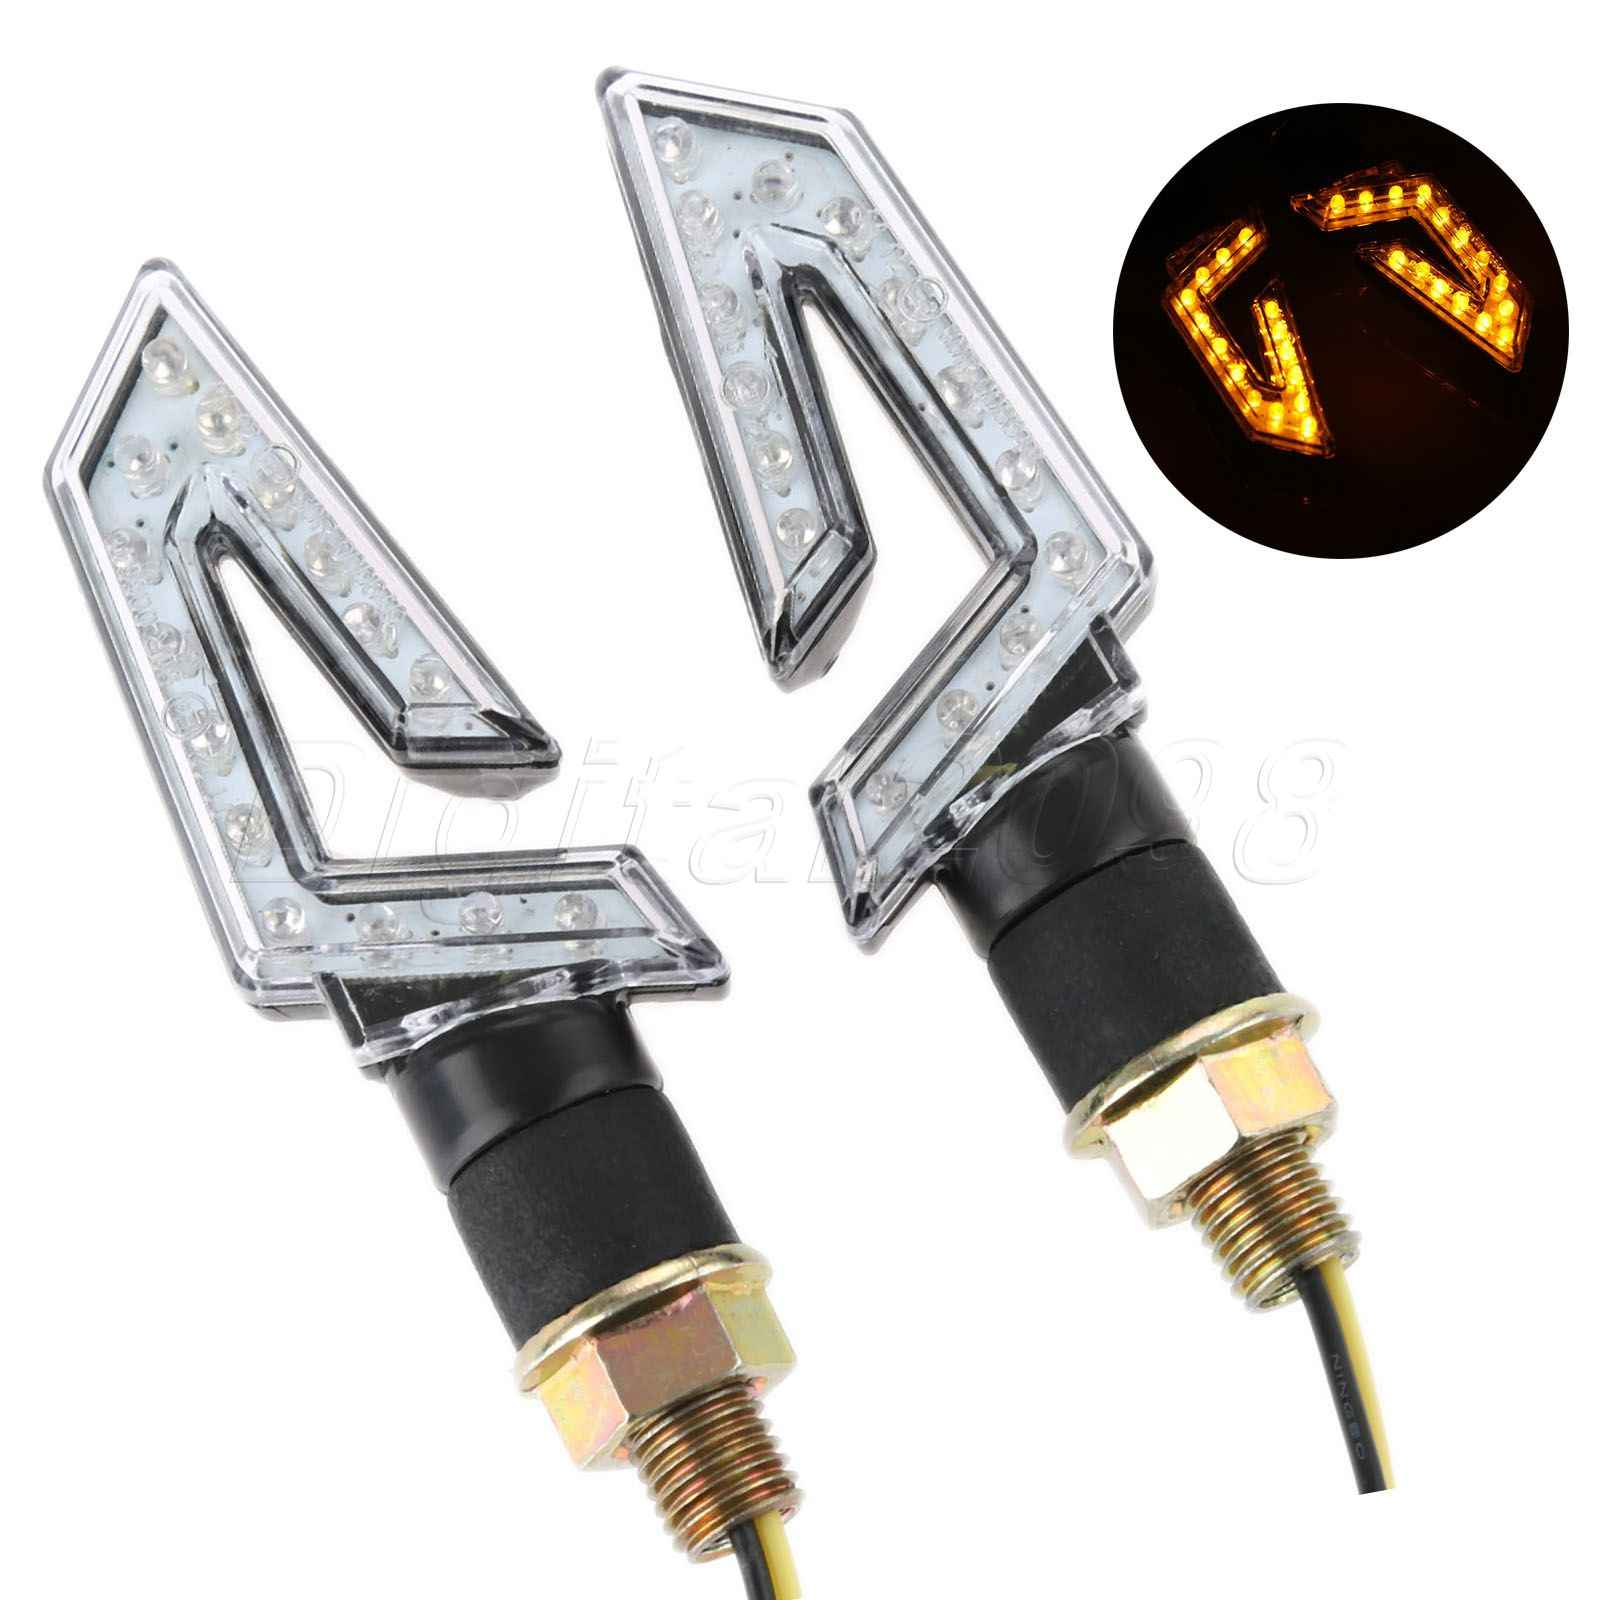 Yetaha 2pcs Motorcycle Light Lamp Turn Signal Indicator 1Pair Flashing LED Blinker Light Headlight Motorbike Bike Bulb New Style